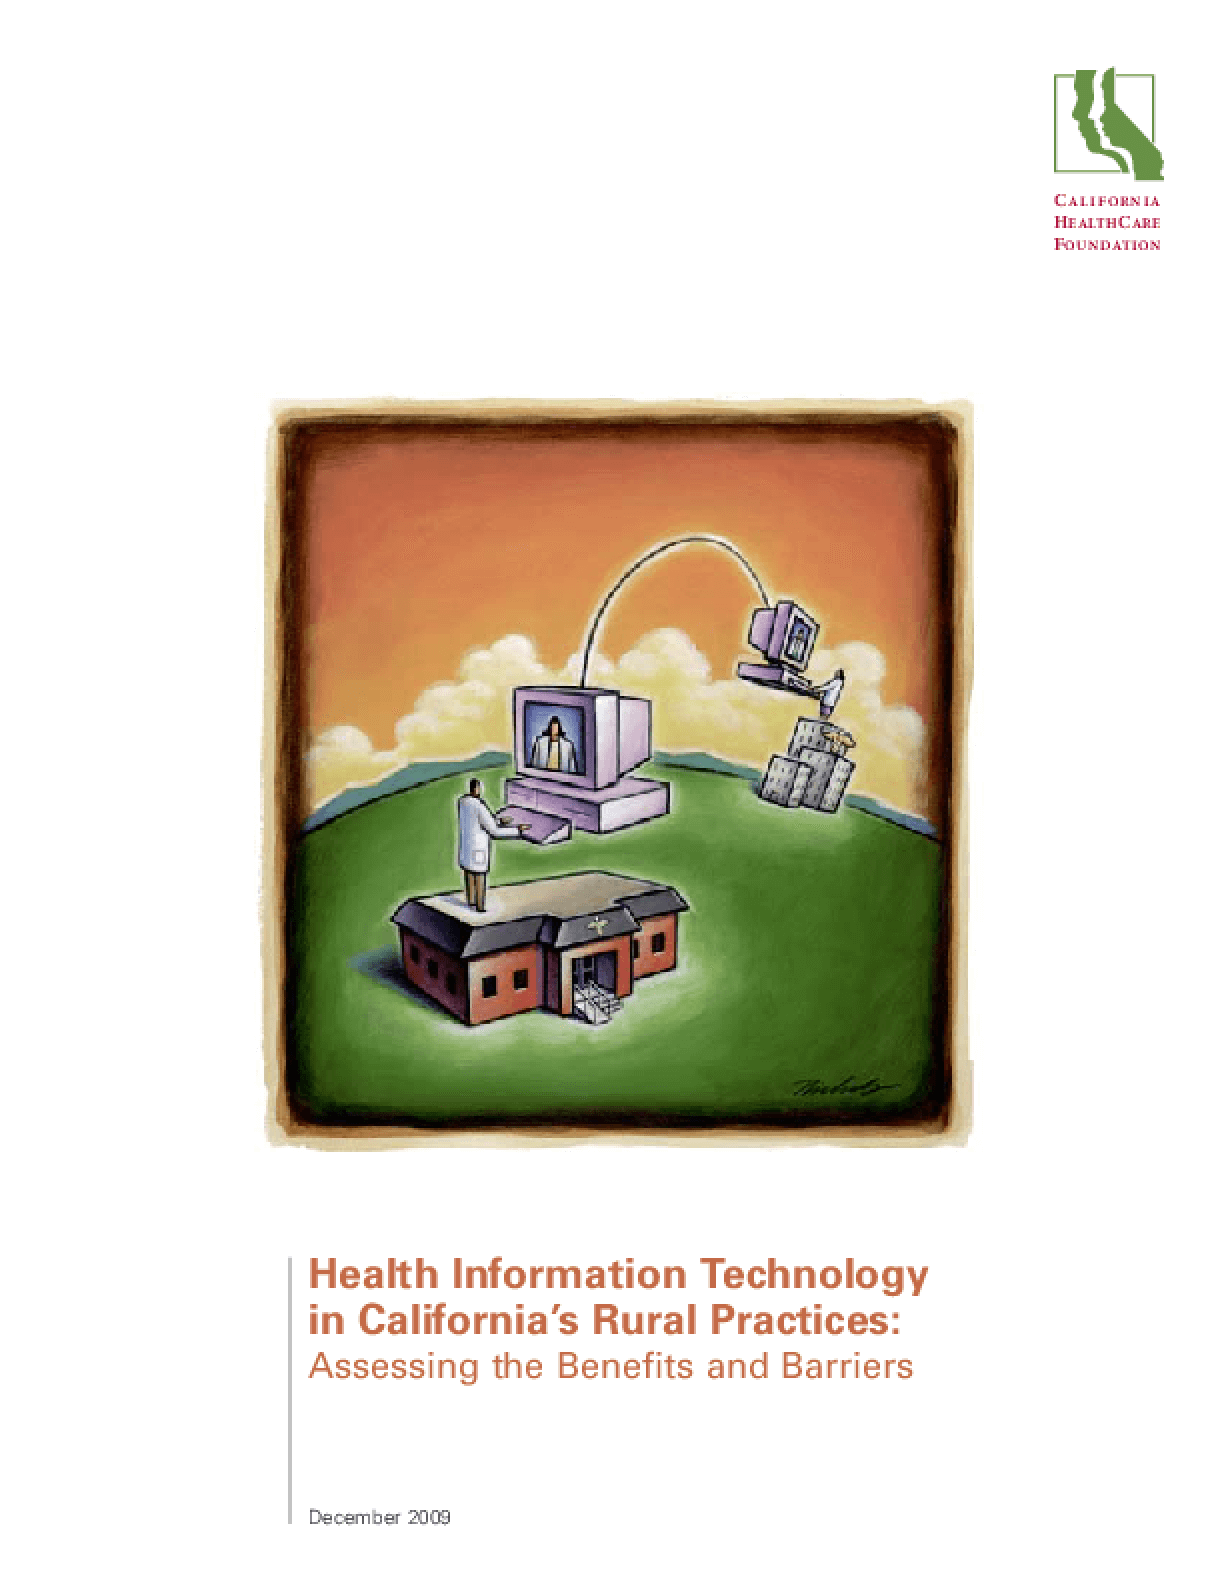 Health Information Technology in California's Rural Practices: Assessing the Benefits and Barriers